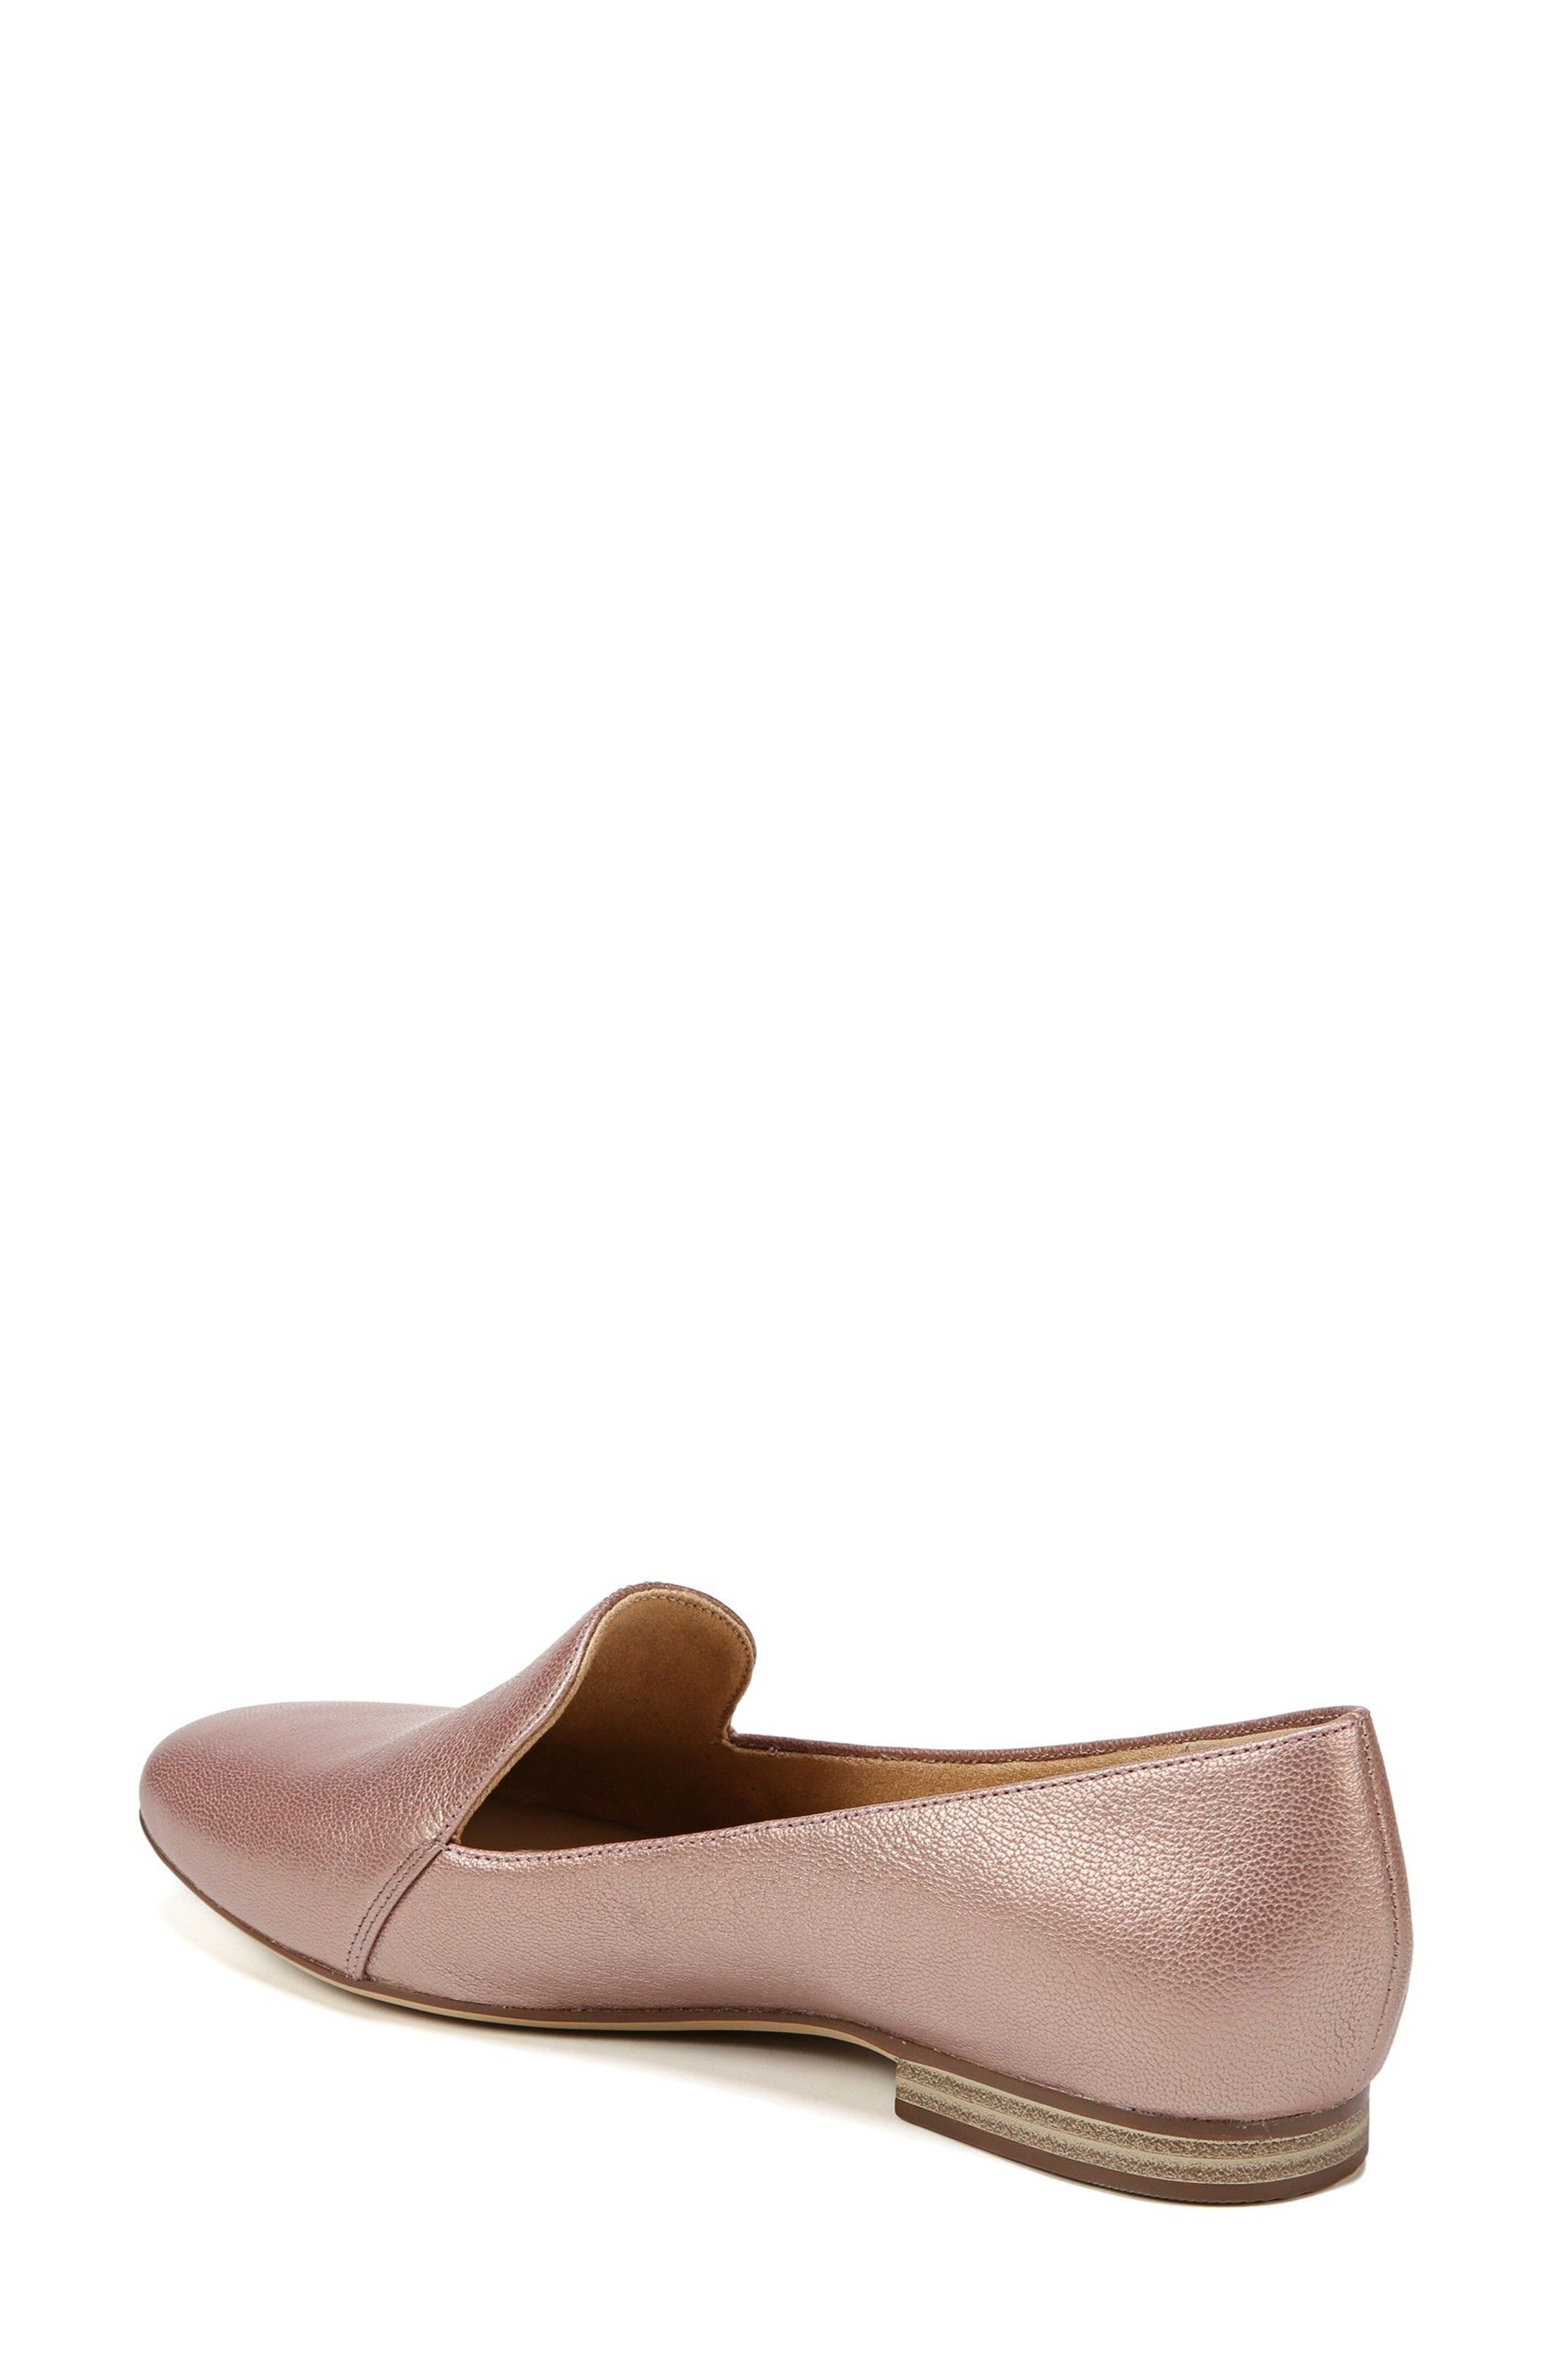 Emiline Flat Loafer,                             Alternate thumbnail 2, color,                             ROSE GOLD LEATHER